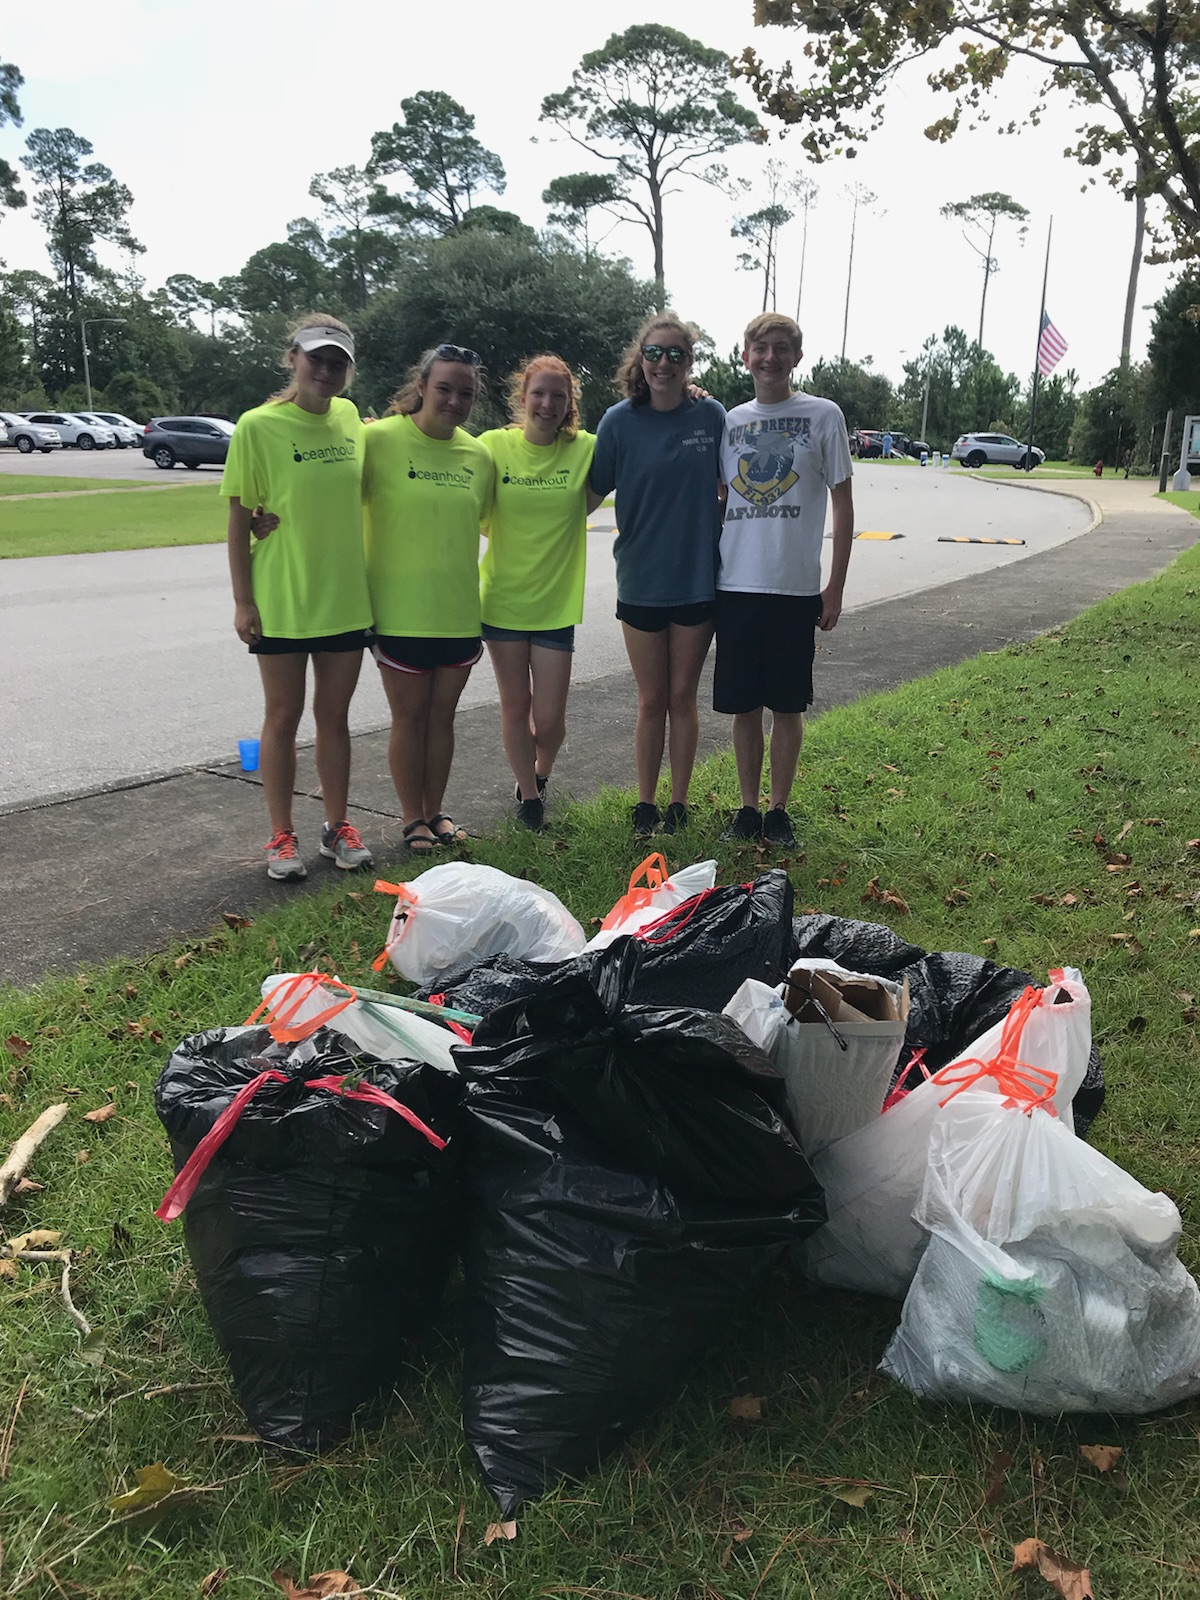 - Between Nat'l Seashore - NLO and the south end of Bob Sikes Bridge 31 volunteers picked up 297 lbs of trash. A lot of styrofoam pieces